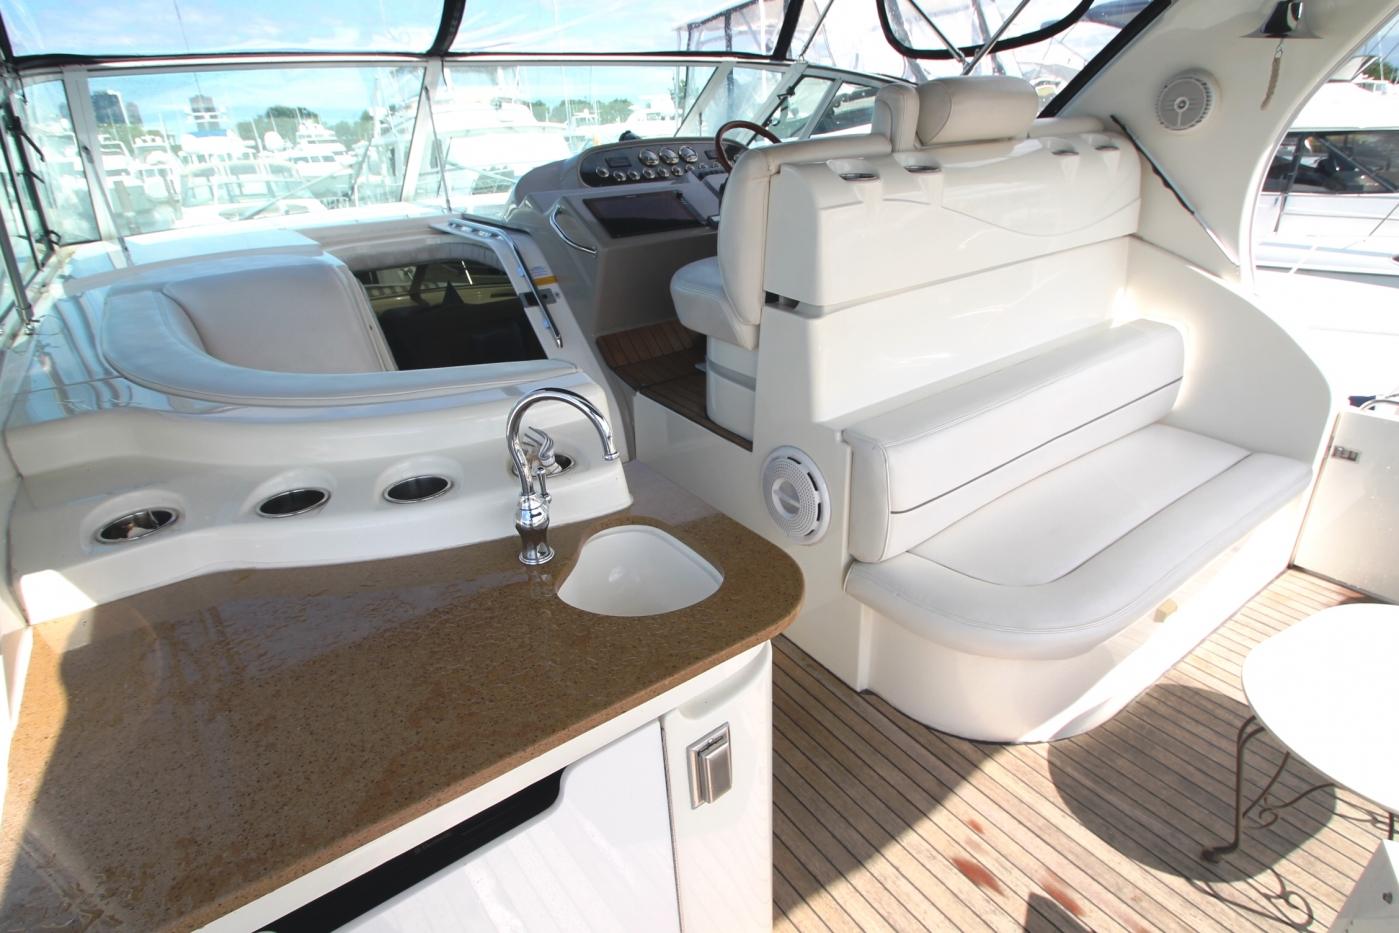 AFT Deck Looking FWD